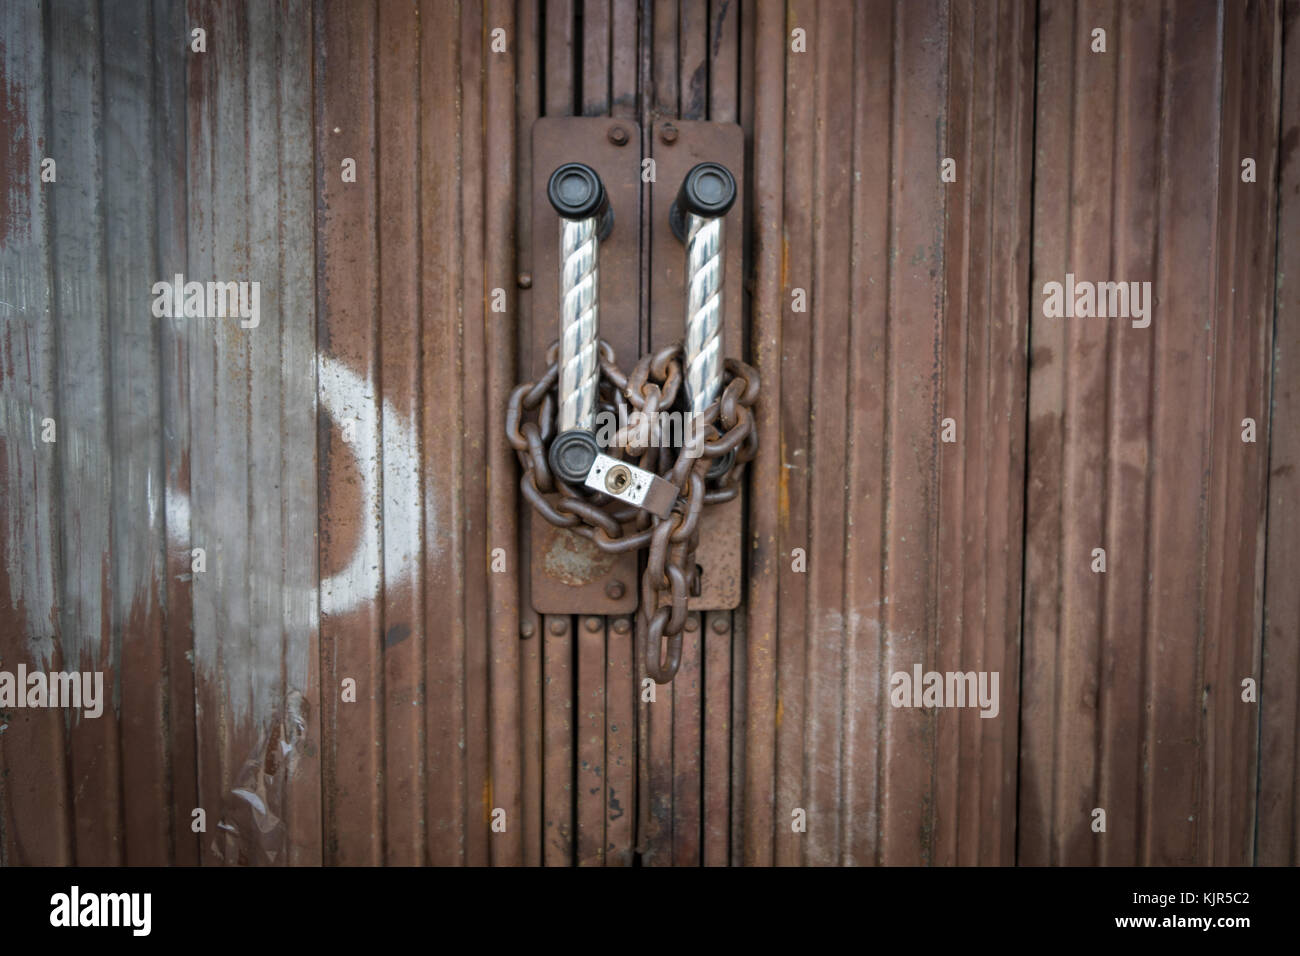 Padlock and chain locked securely on rusty door. - Stock Image